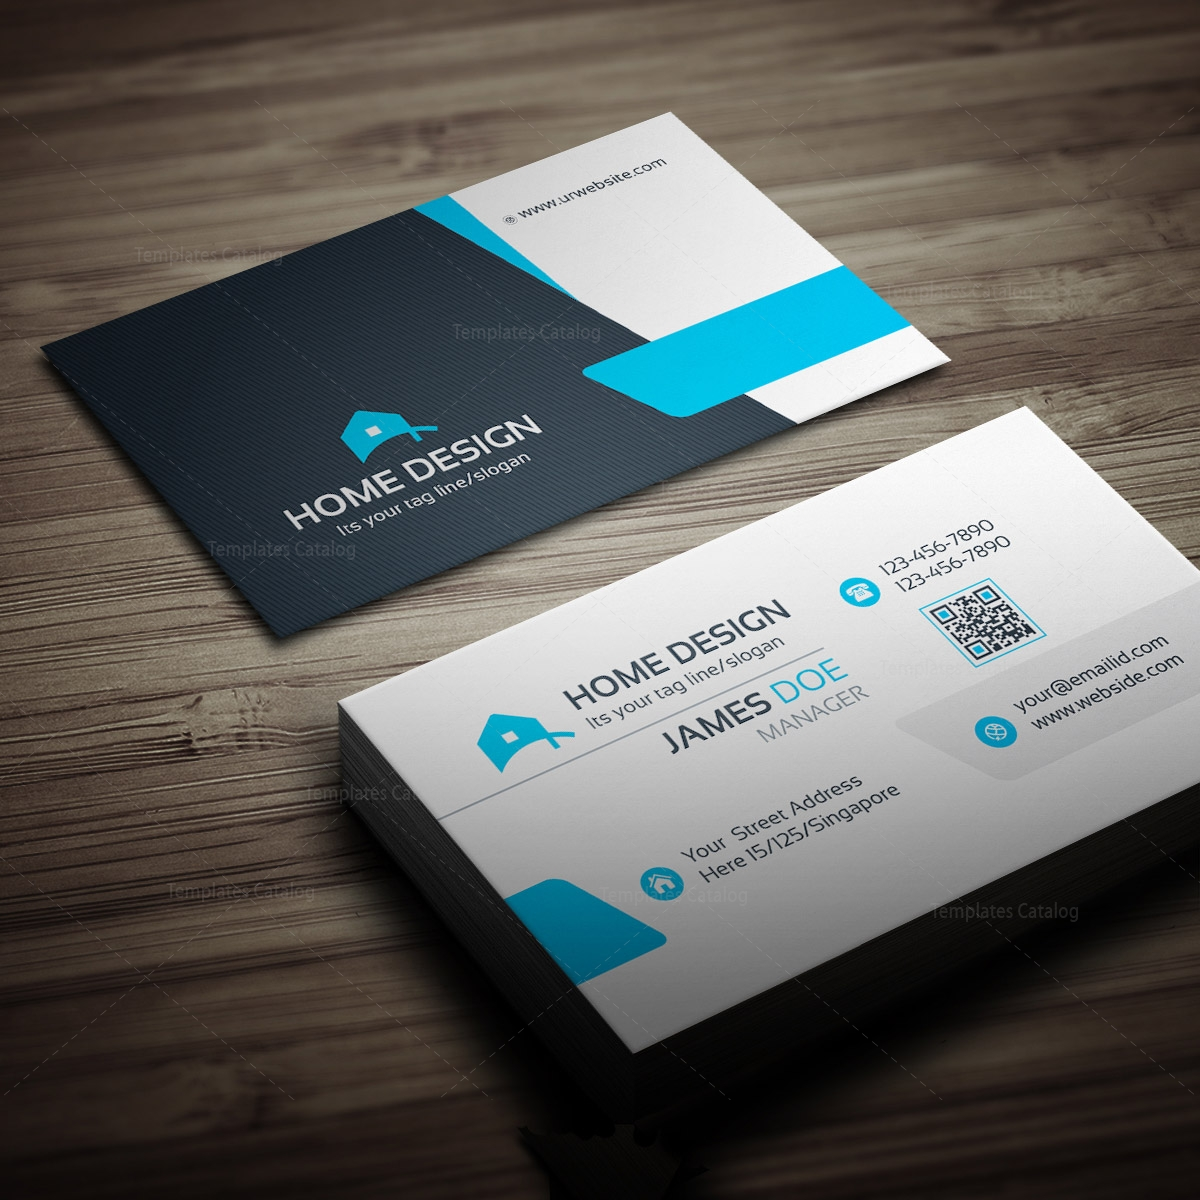 20 examples of a stylish business card photoshop template